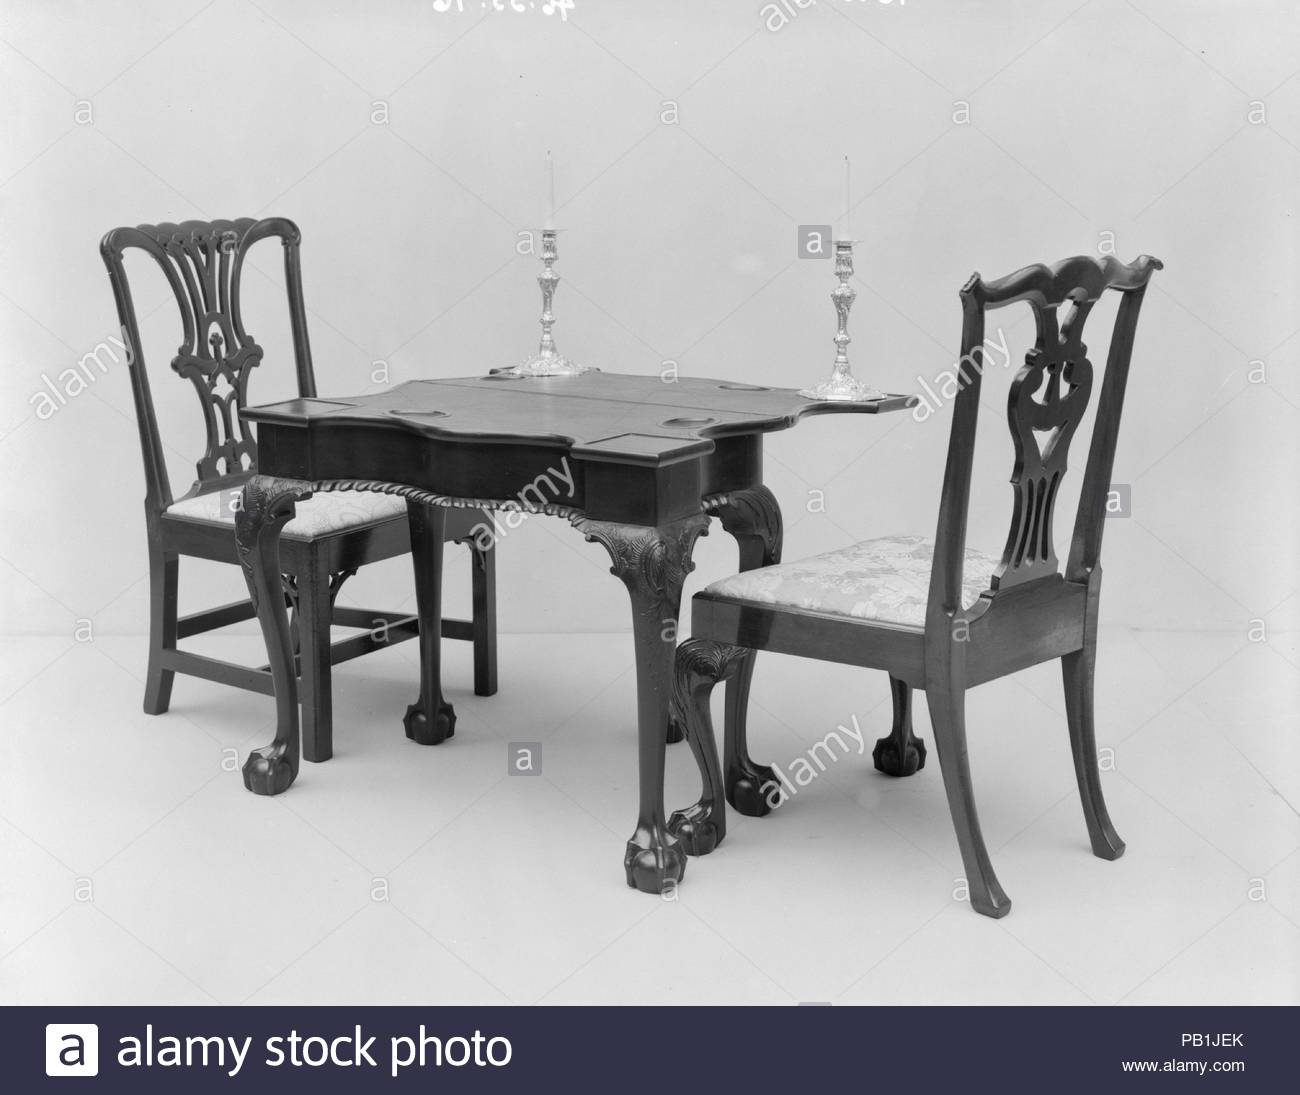 card table culture american dimensions 27 78 x 34 38 x 33 14 in 708 cm x 873 cm x 845 cm date 1760 90 museum metropolitan museum of art new york usa PB1JEK